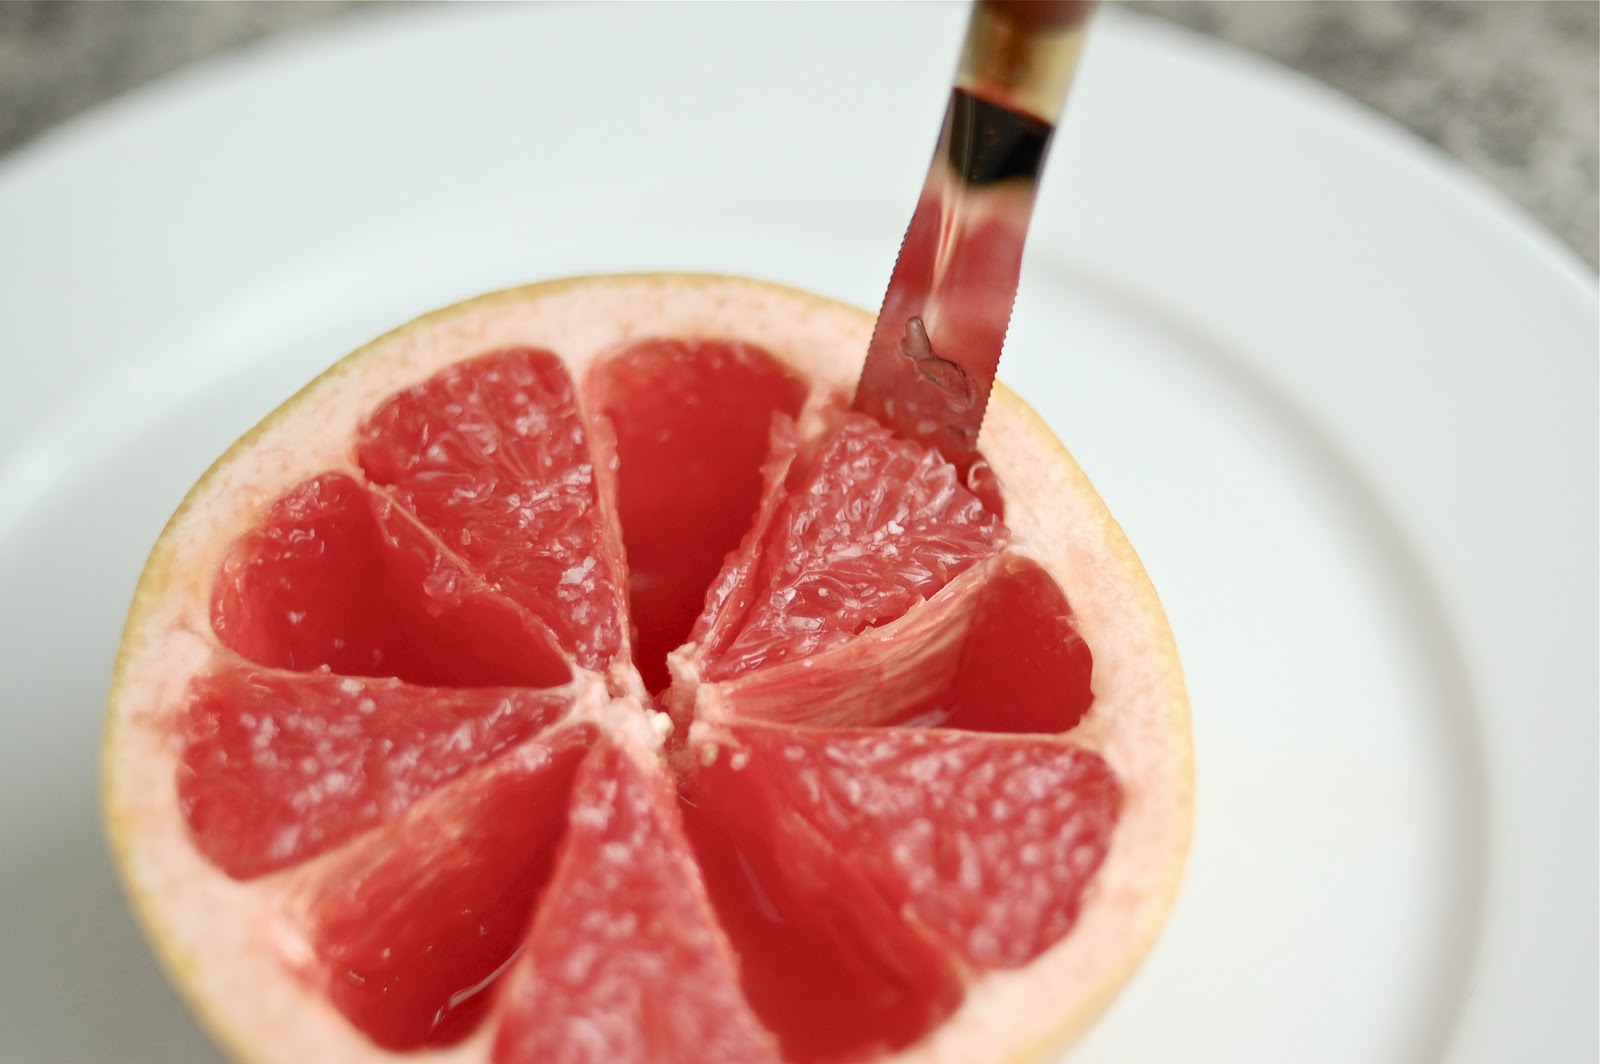 EAting grapefruit